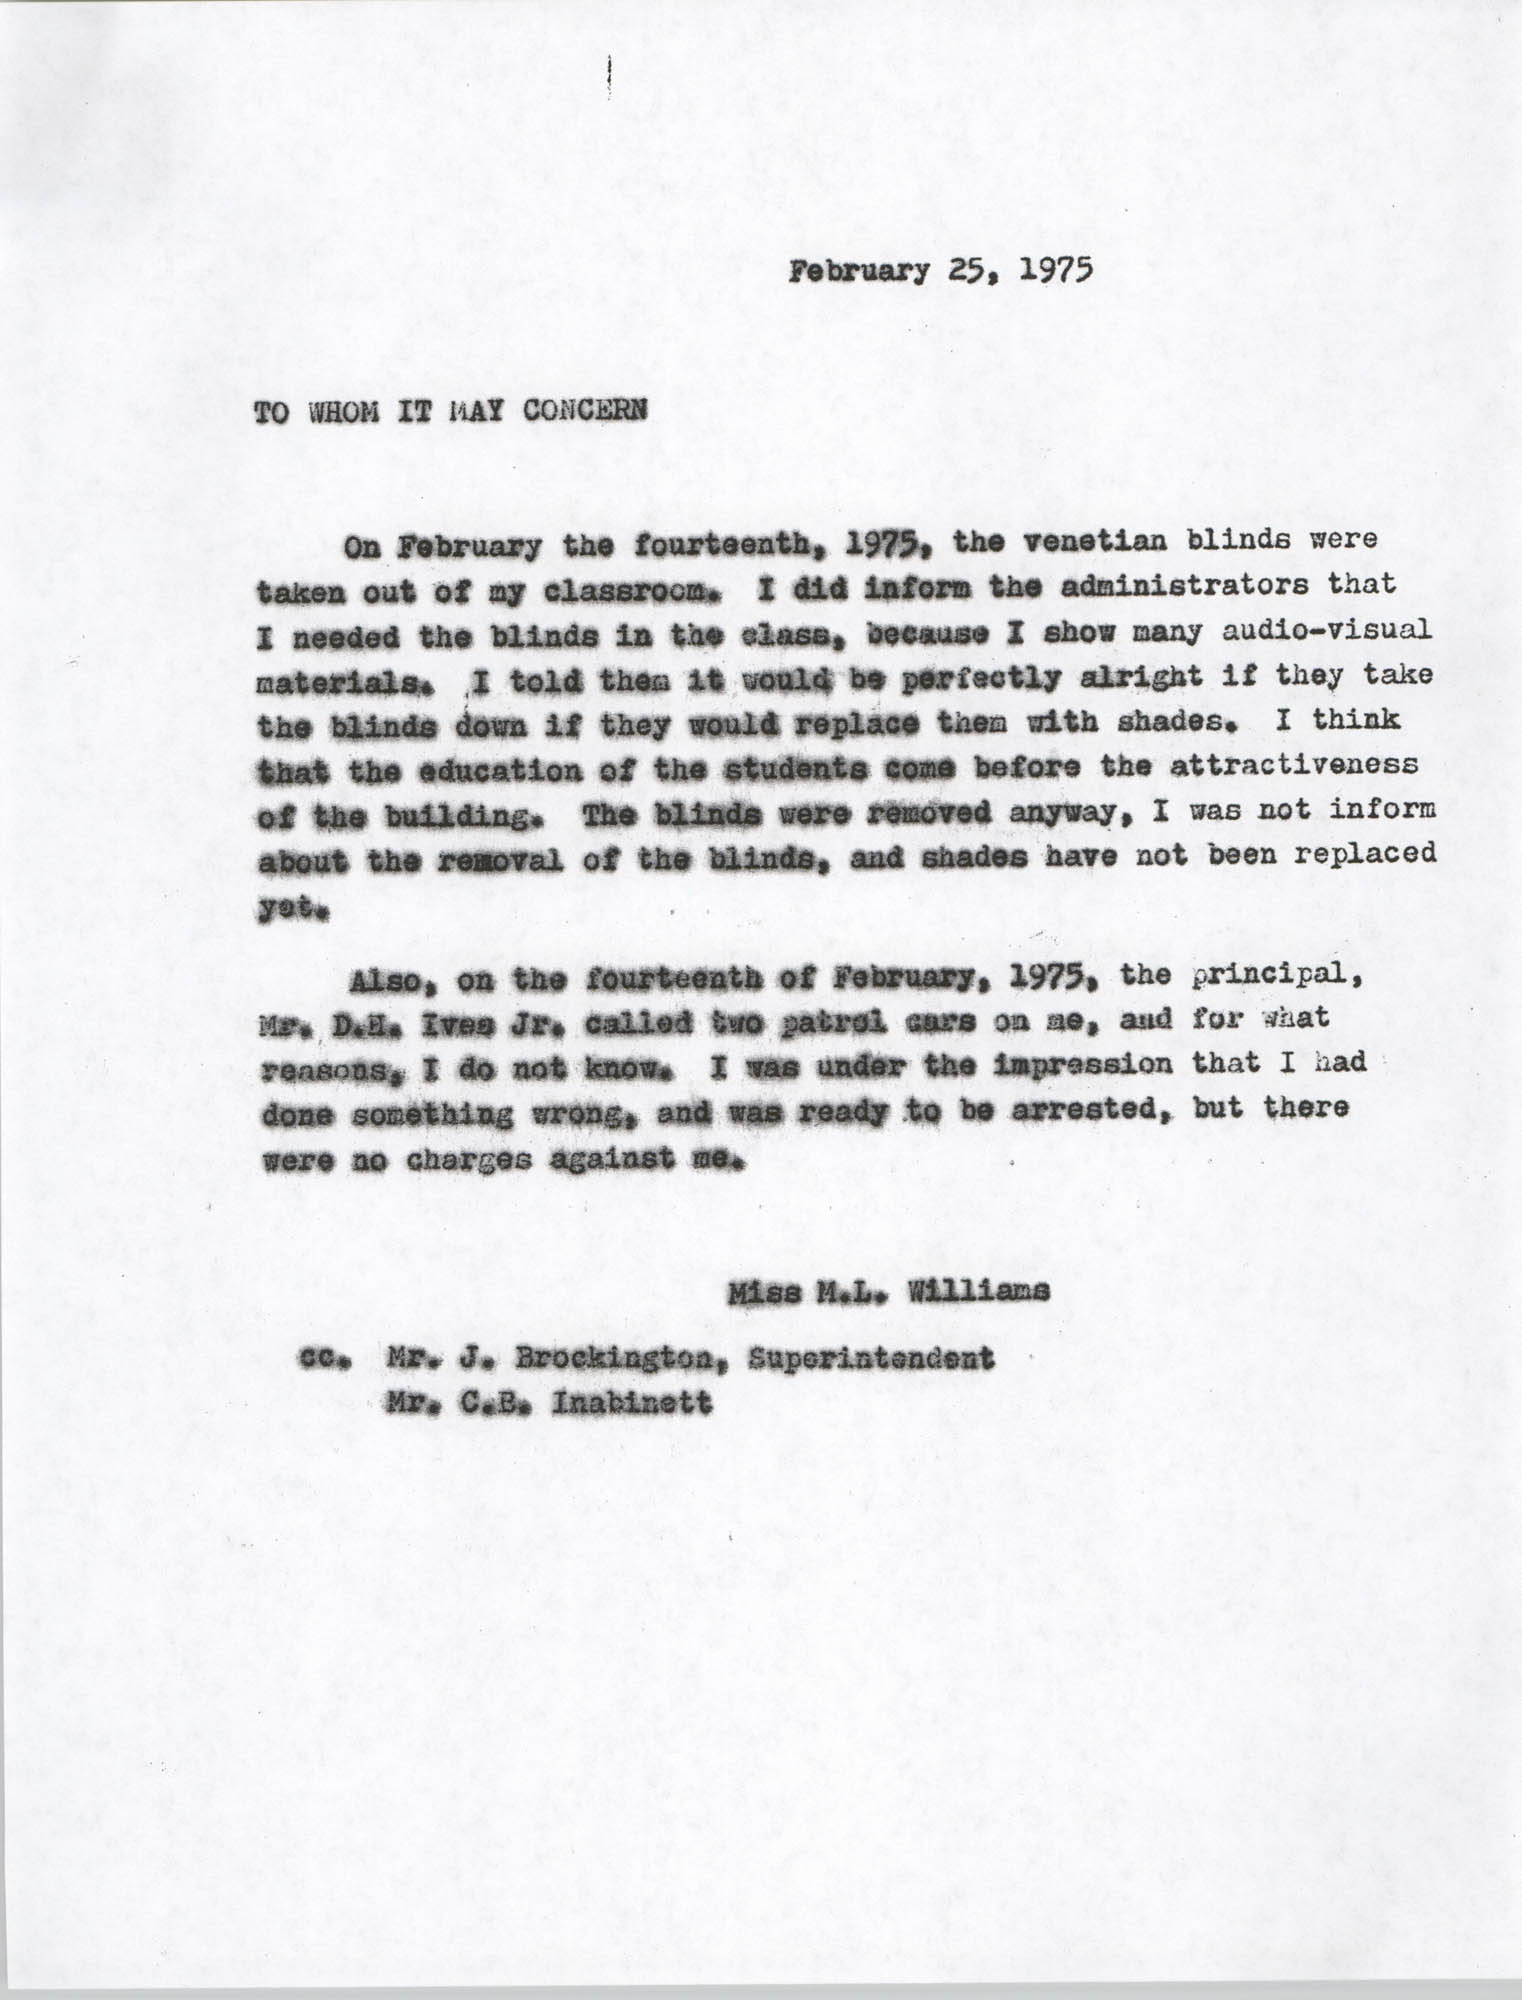 Letter from M. L. Williams, February 25, 1975